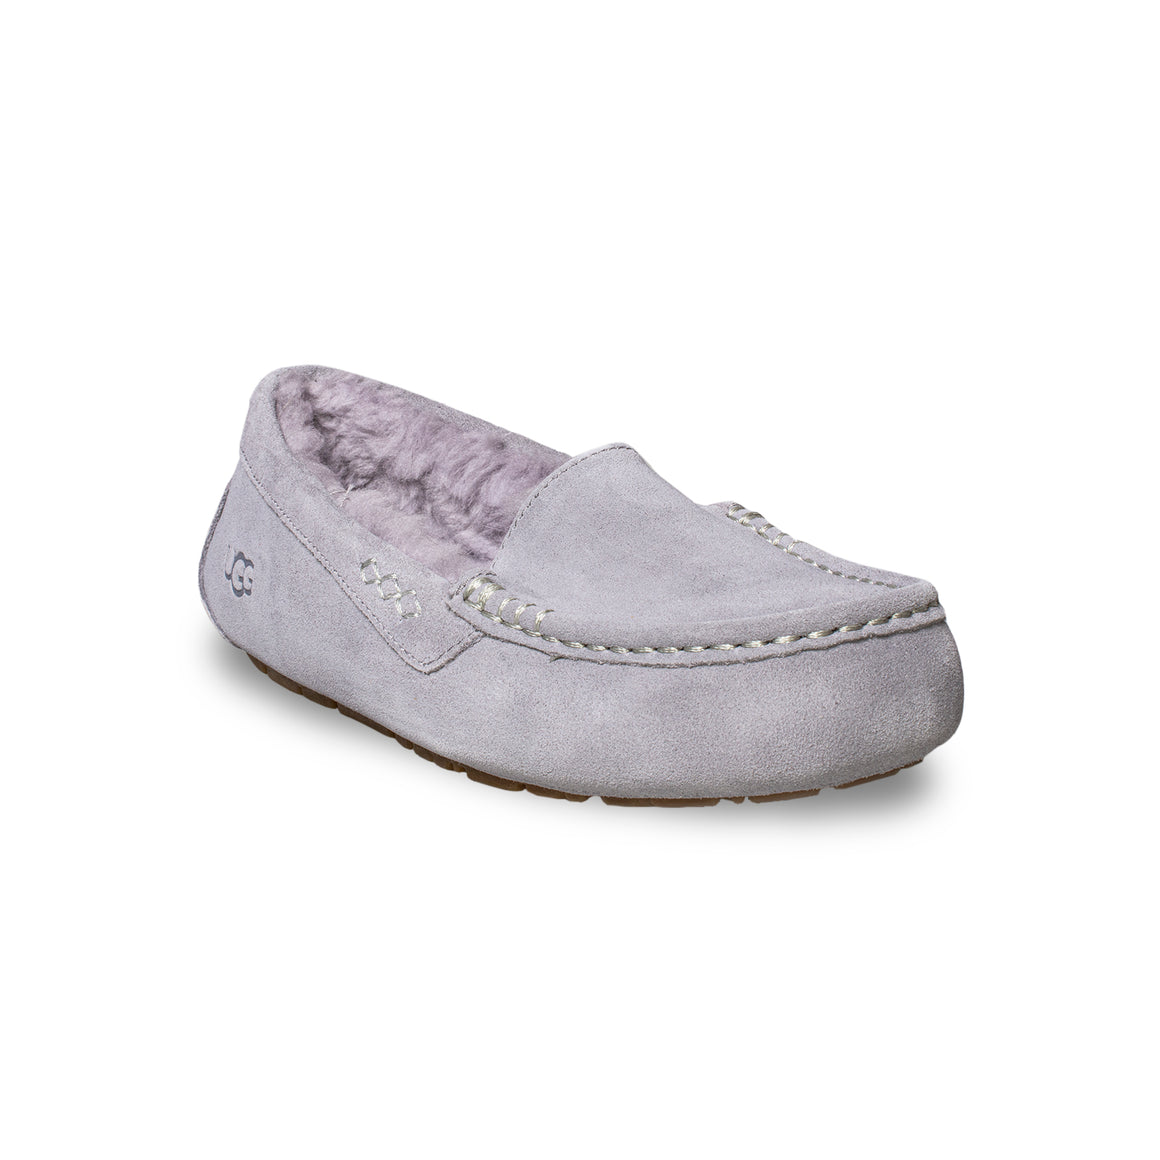 UGG Ansley Soft Amethyst Slippers - Women's